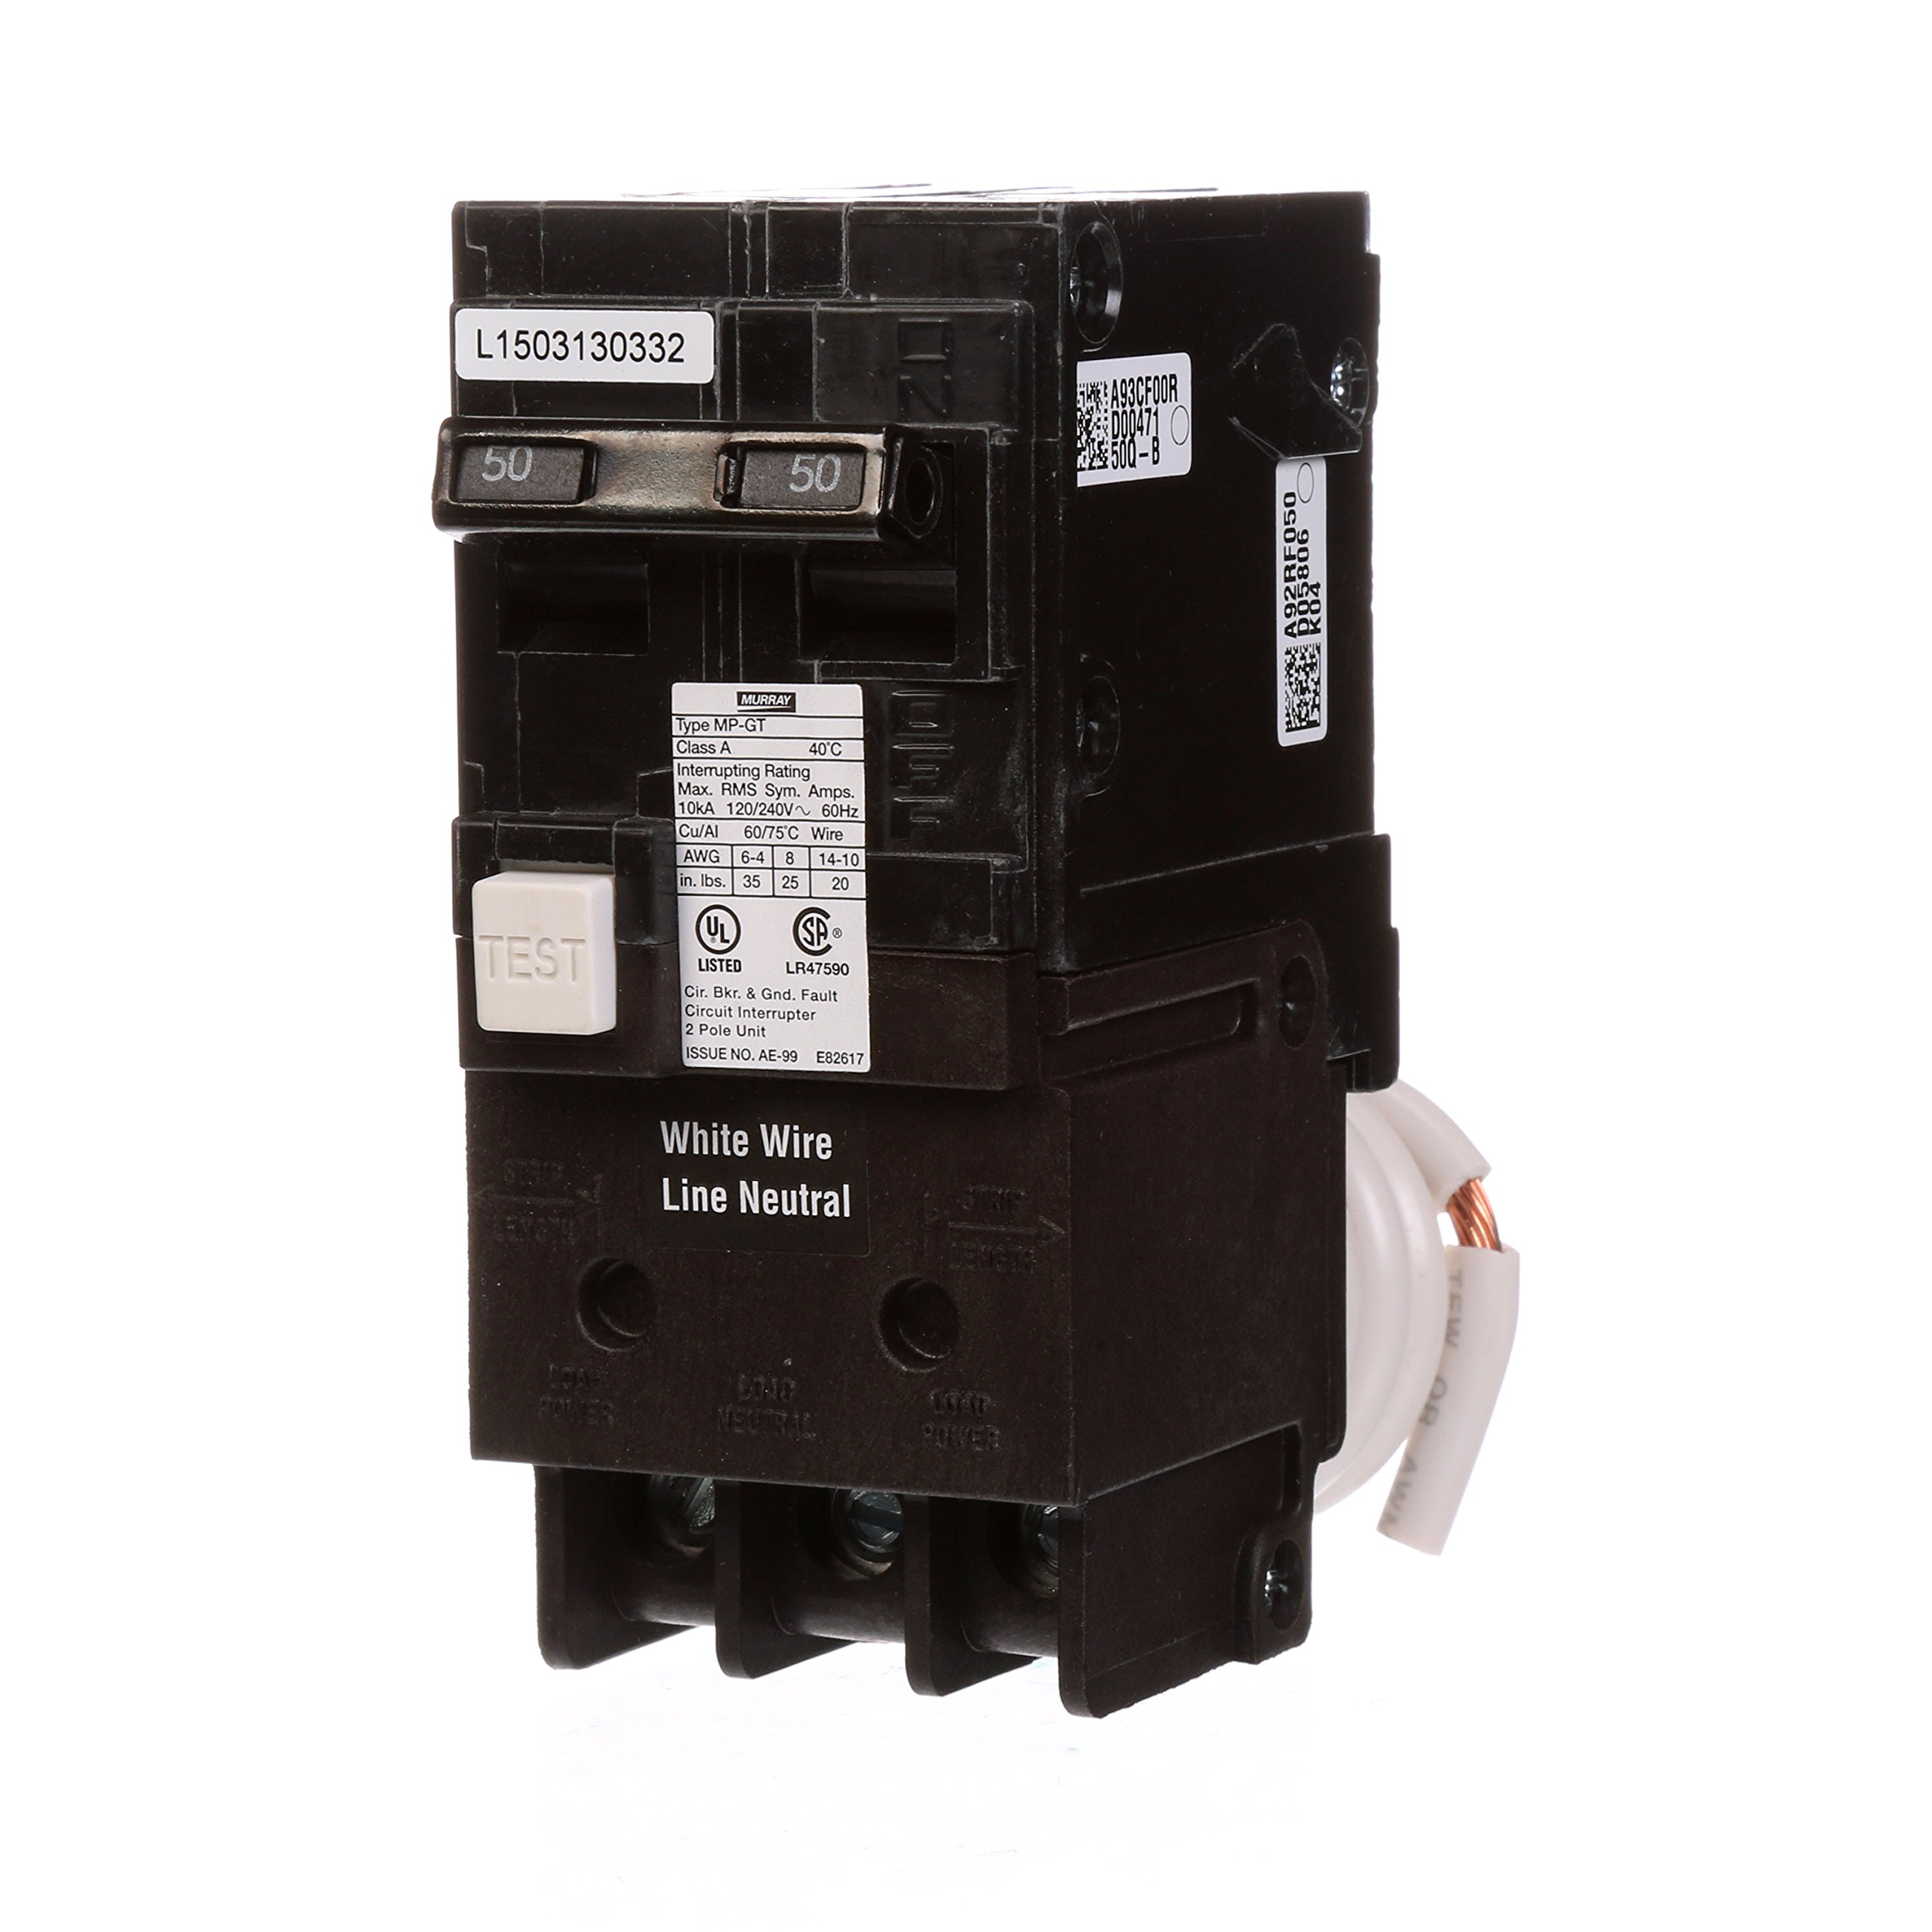 Murray MP250GFA 50 Amp 2-Pole Gfci Circuit Breaker with Self Test & Lockout Feature